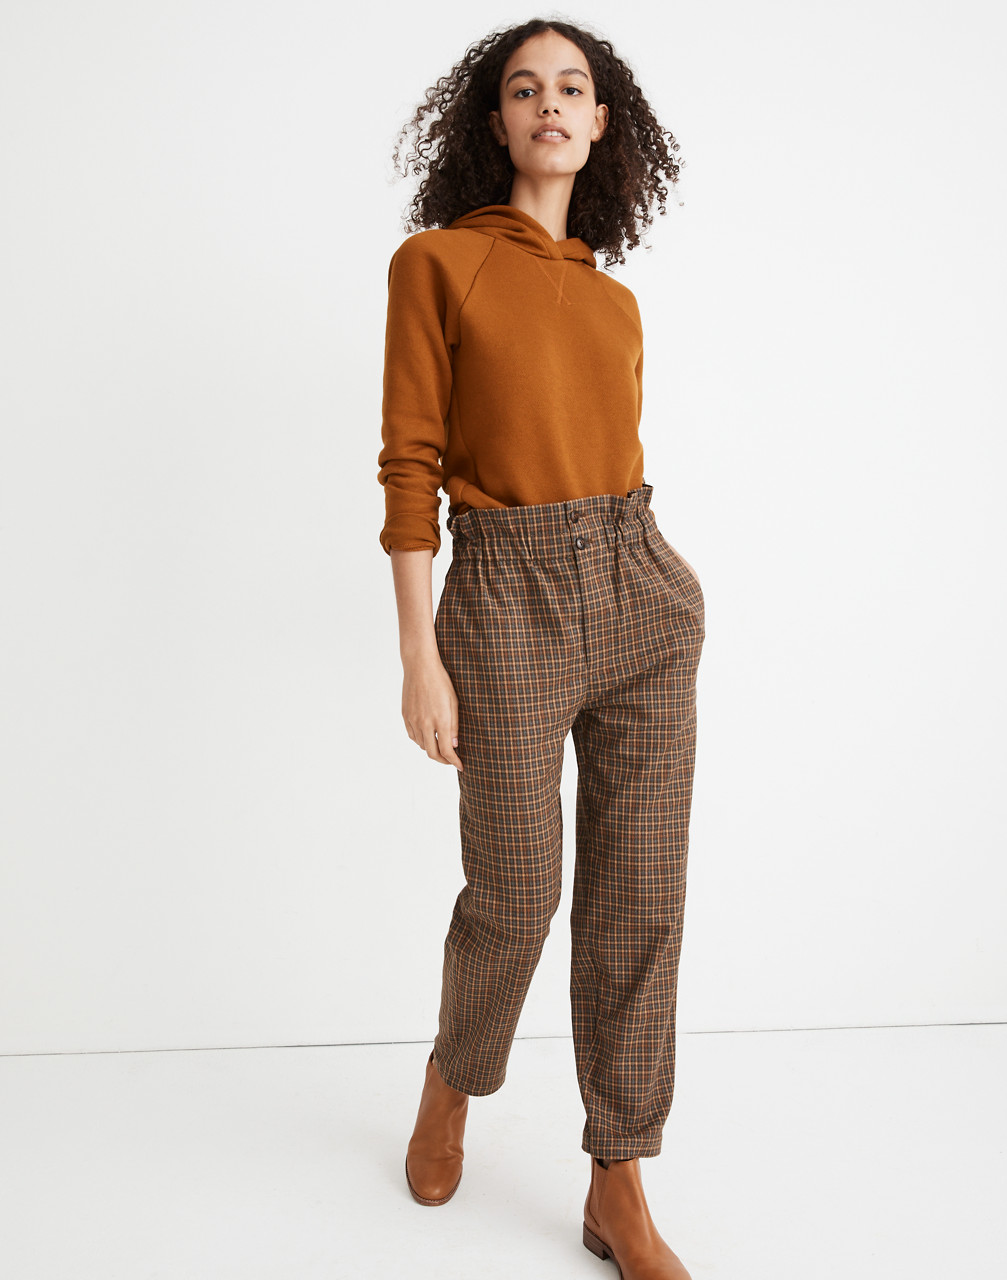 Cottagecore Clothing, Soft Aesthetic Plaid Paperbag Tapered Pants $69.99 AT vintagedancer.com